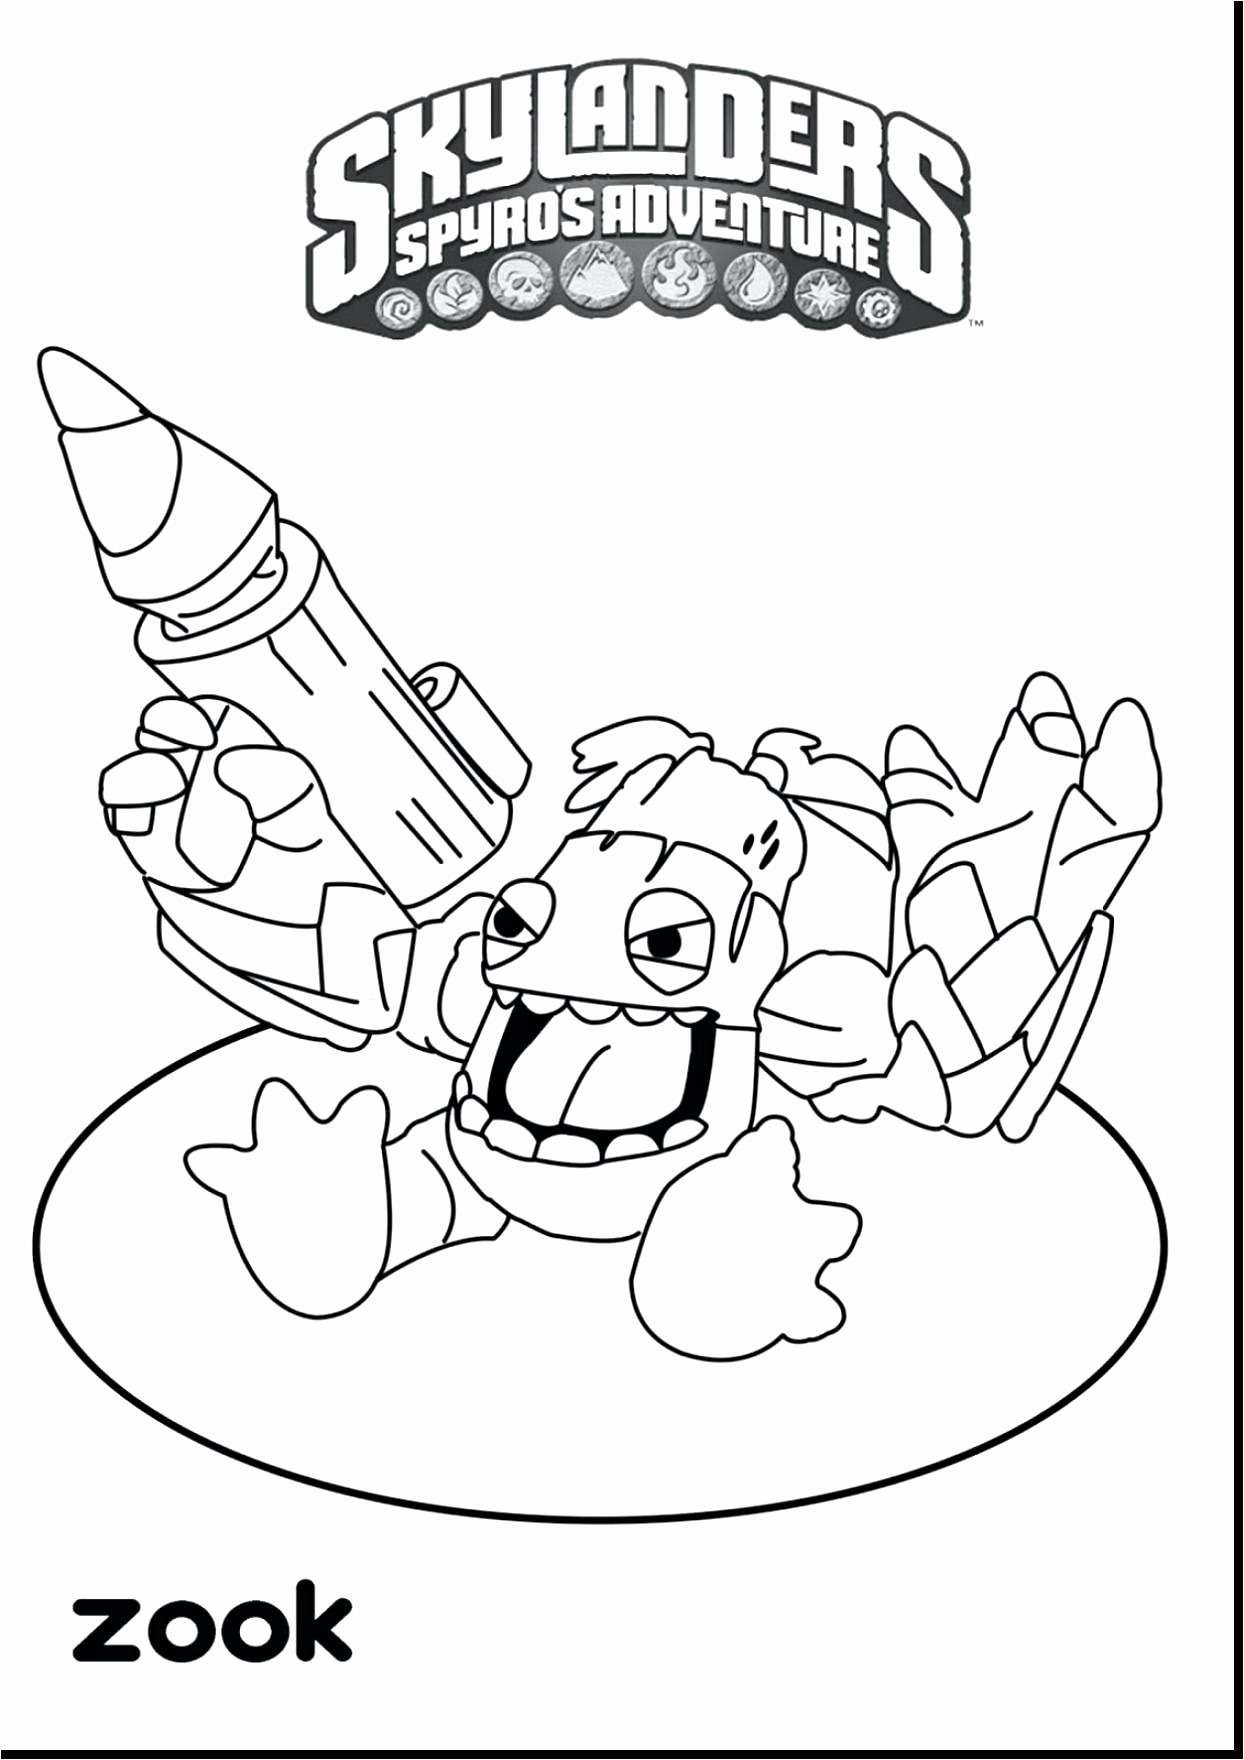 garden of eden coloring pages Collection-Garden Coloring Page Printable Christmas Coloring Pages Hard 4-g